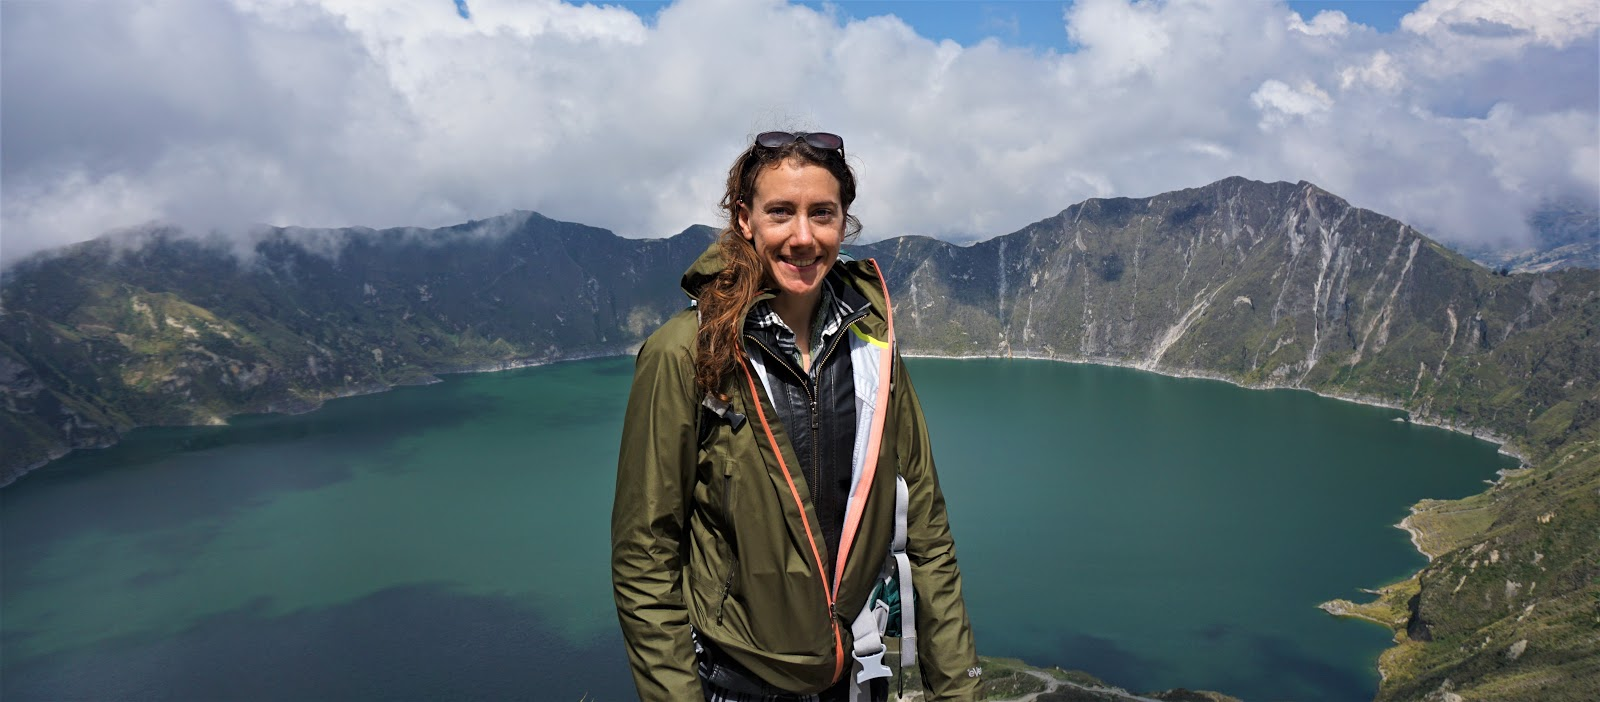 Circuito Quilotoa : The mountain lioness riding the quilotoa loop